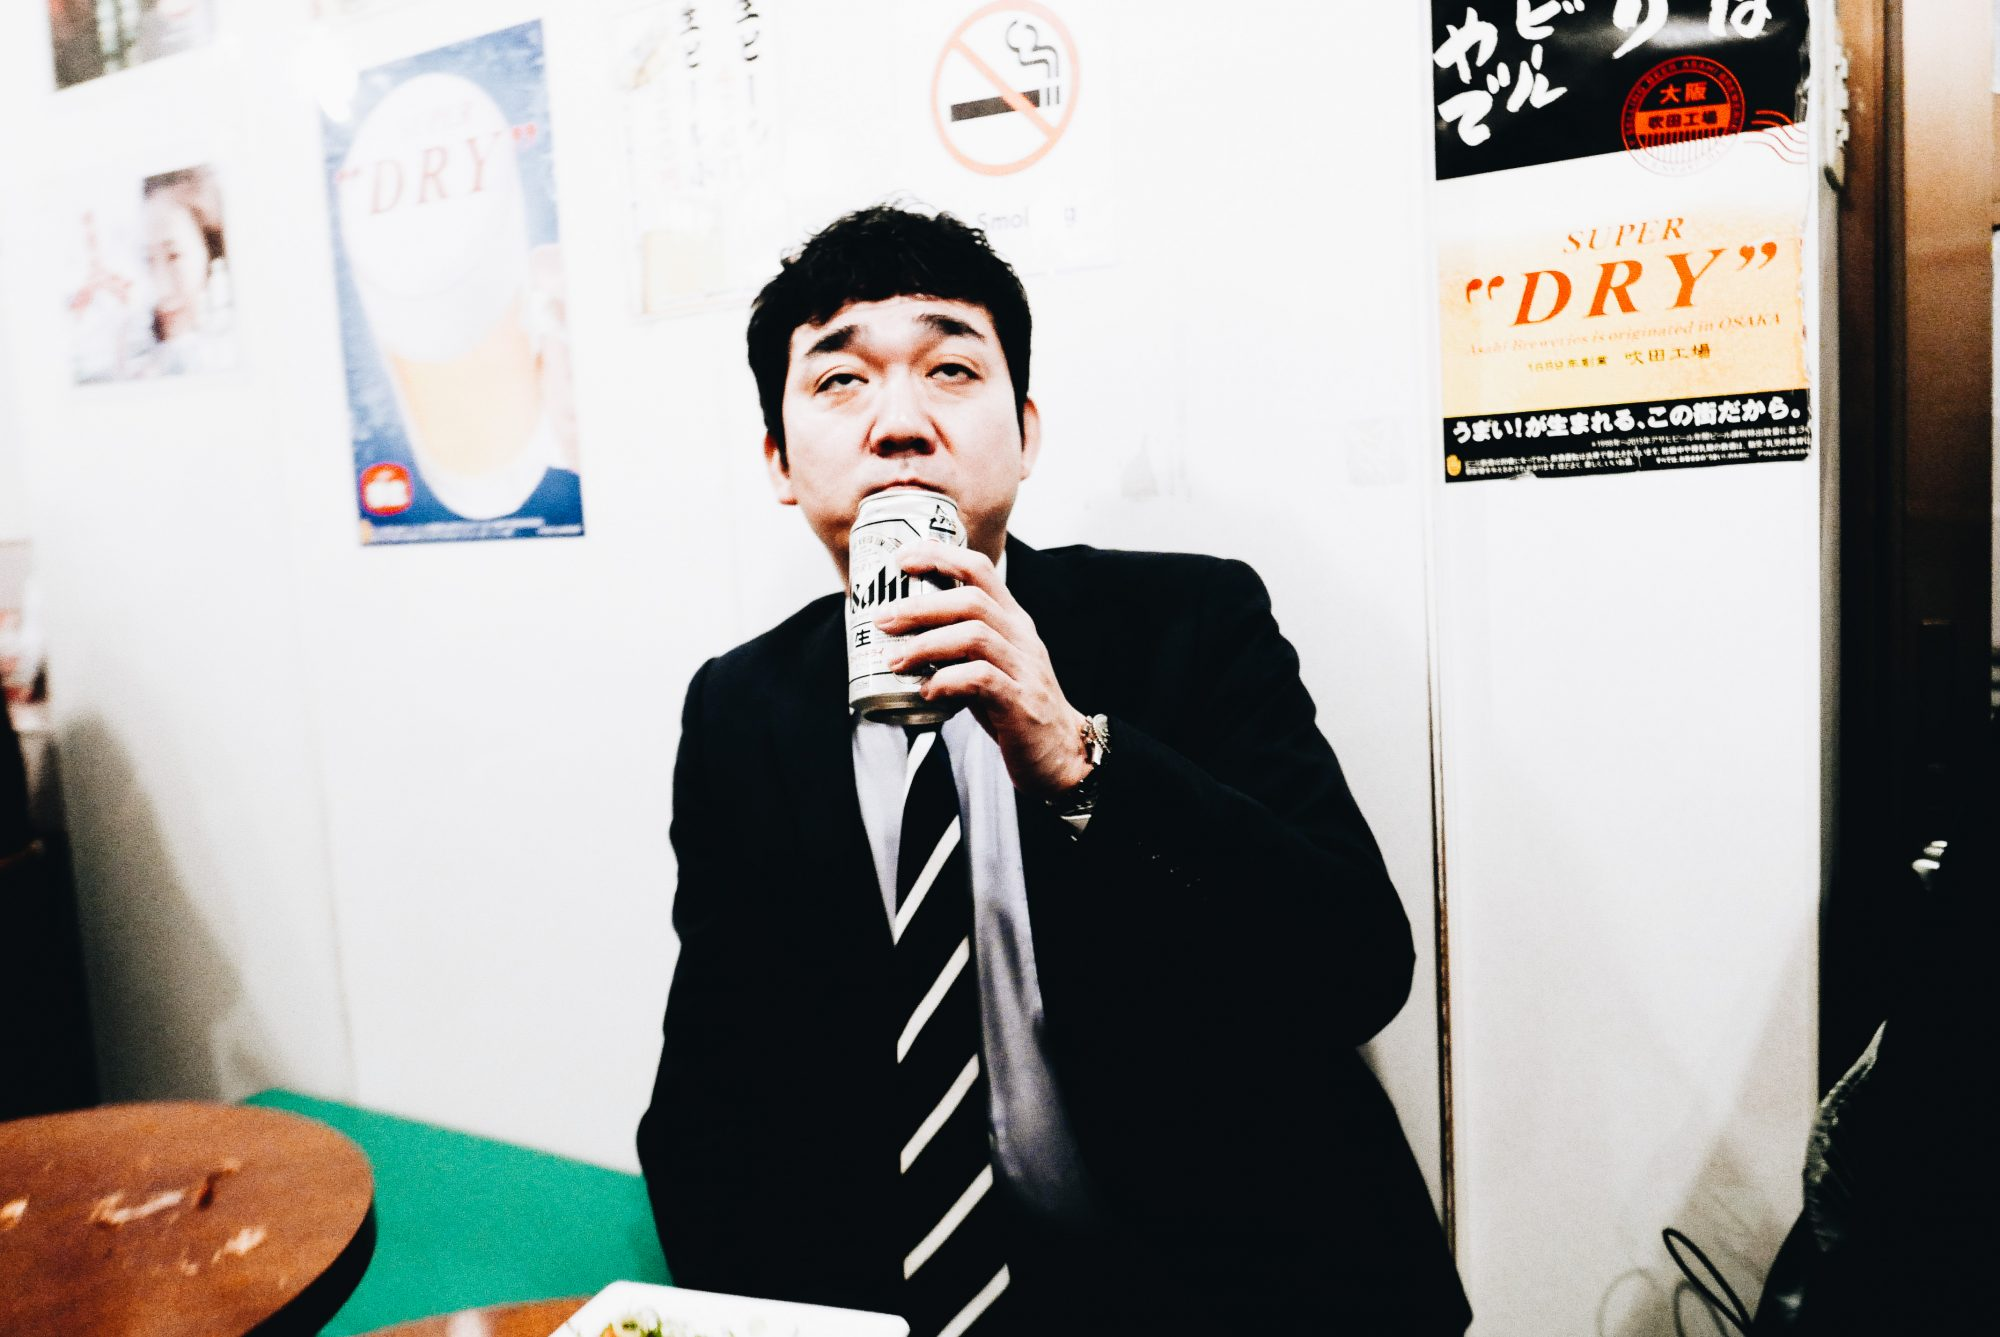 Osaka. Suit drinking a beer